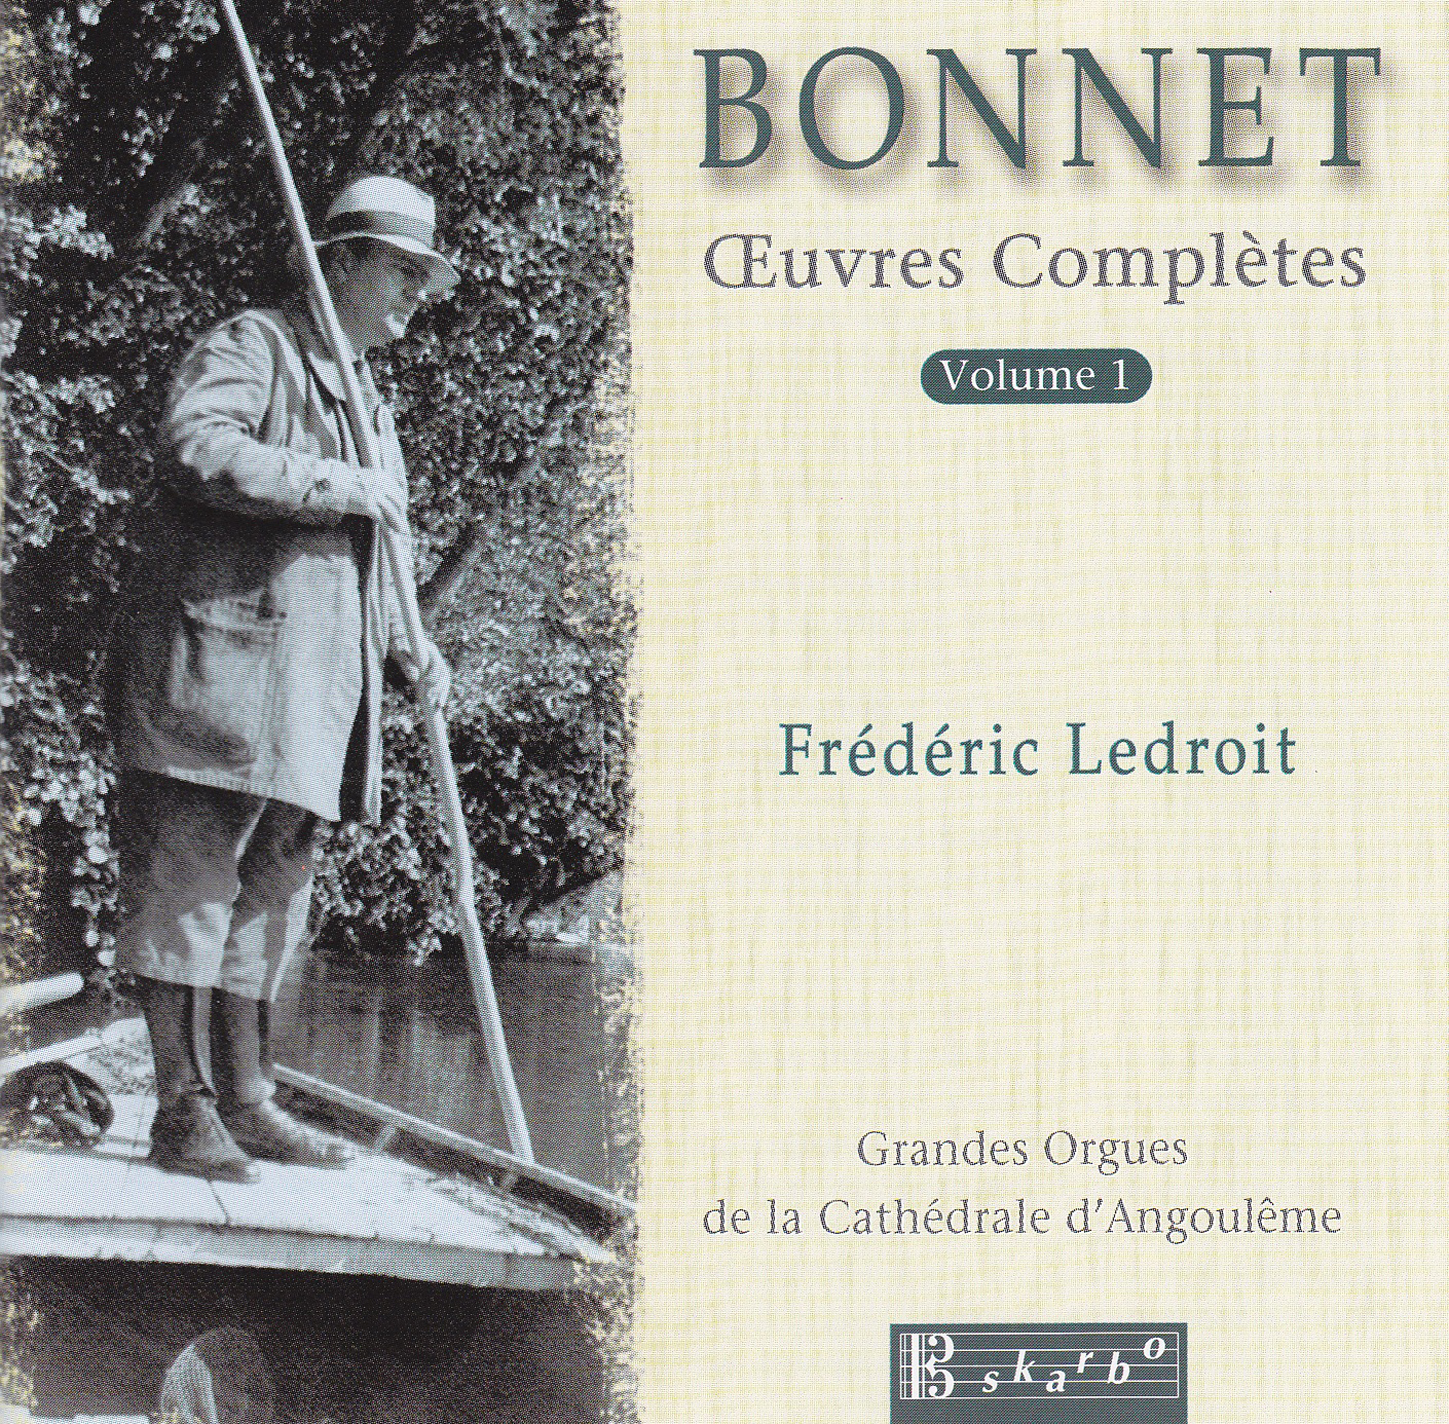 12 Pieces d'orgue, Op. 5, 12 Pieces d'orgue, Op. 5: 7. Intermezzo